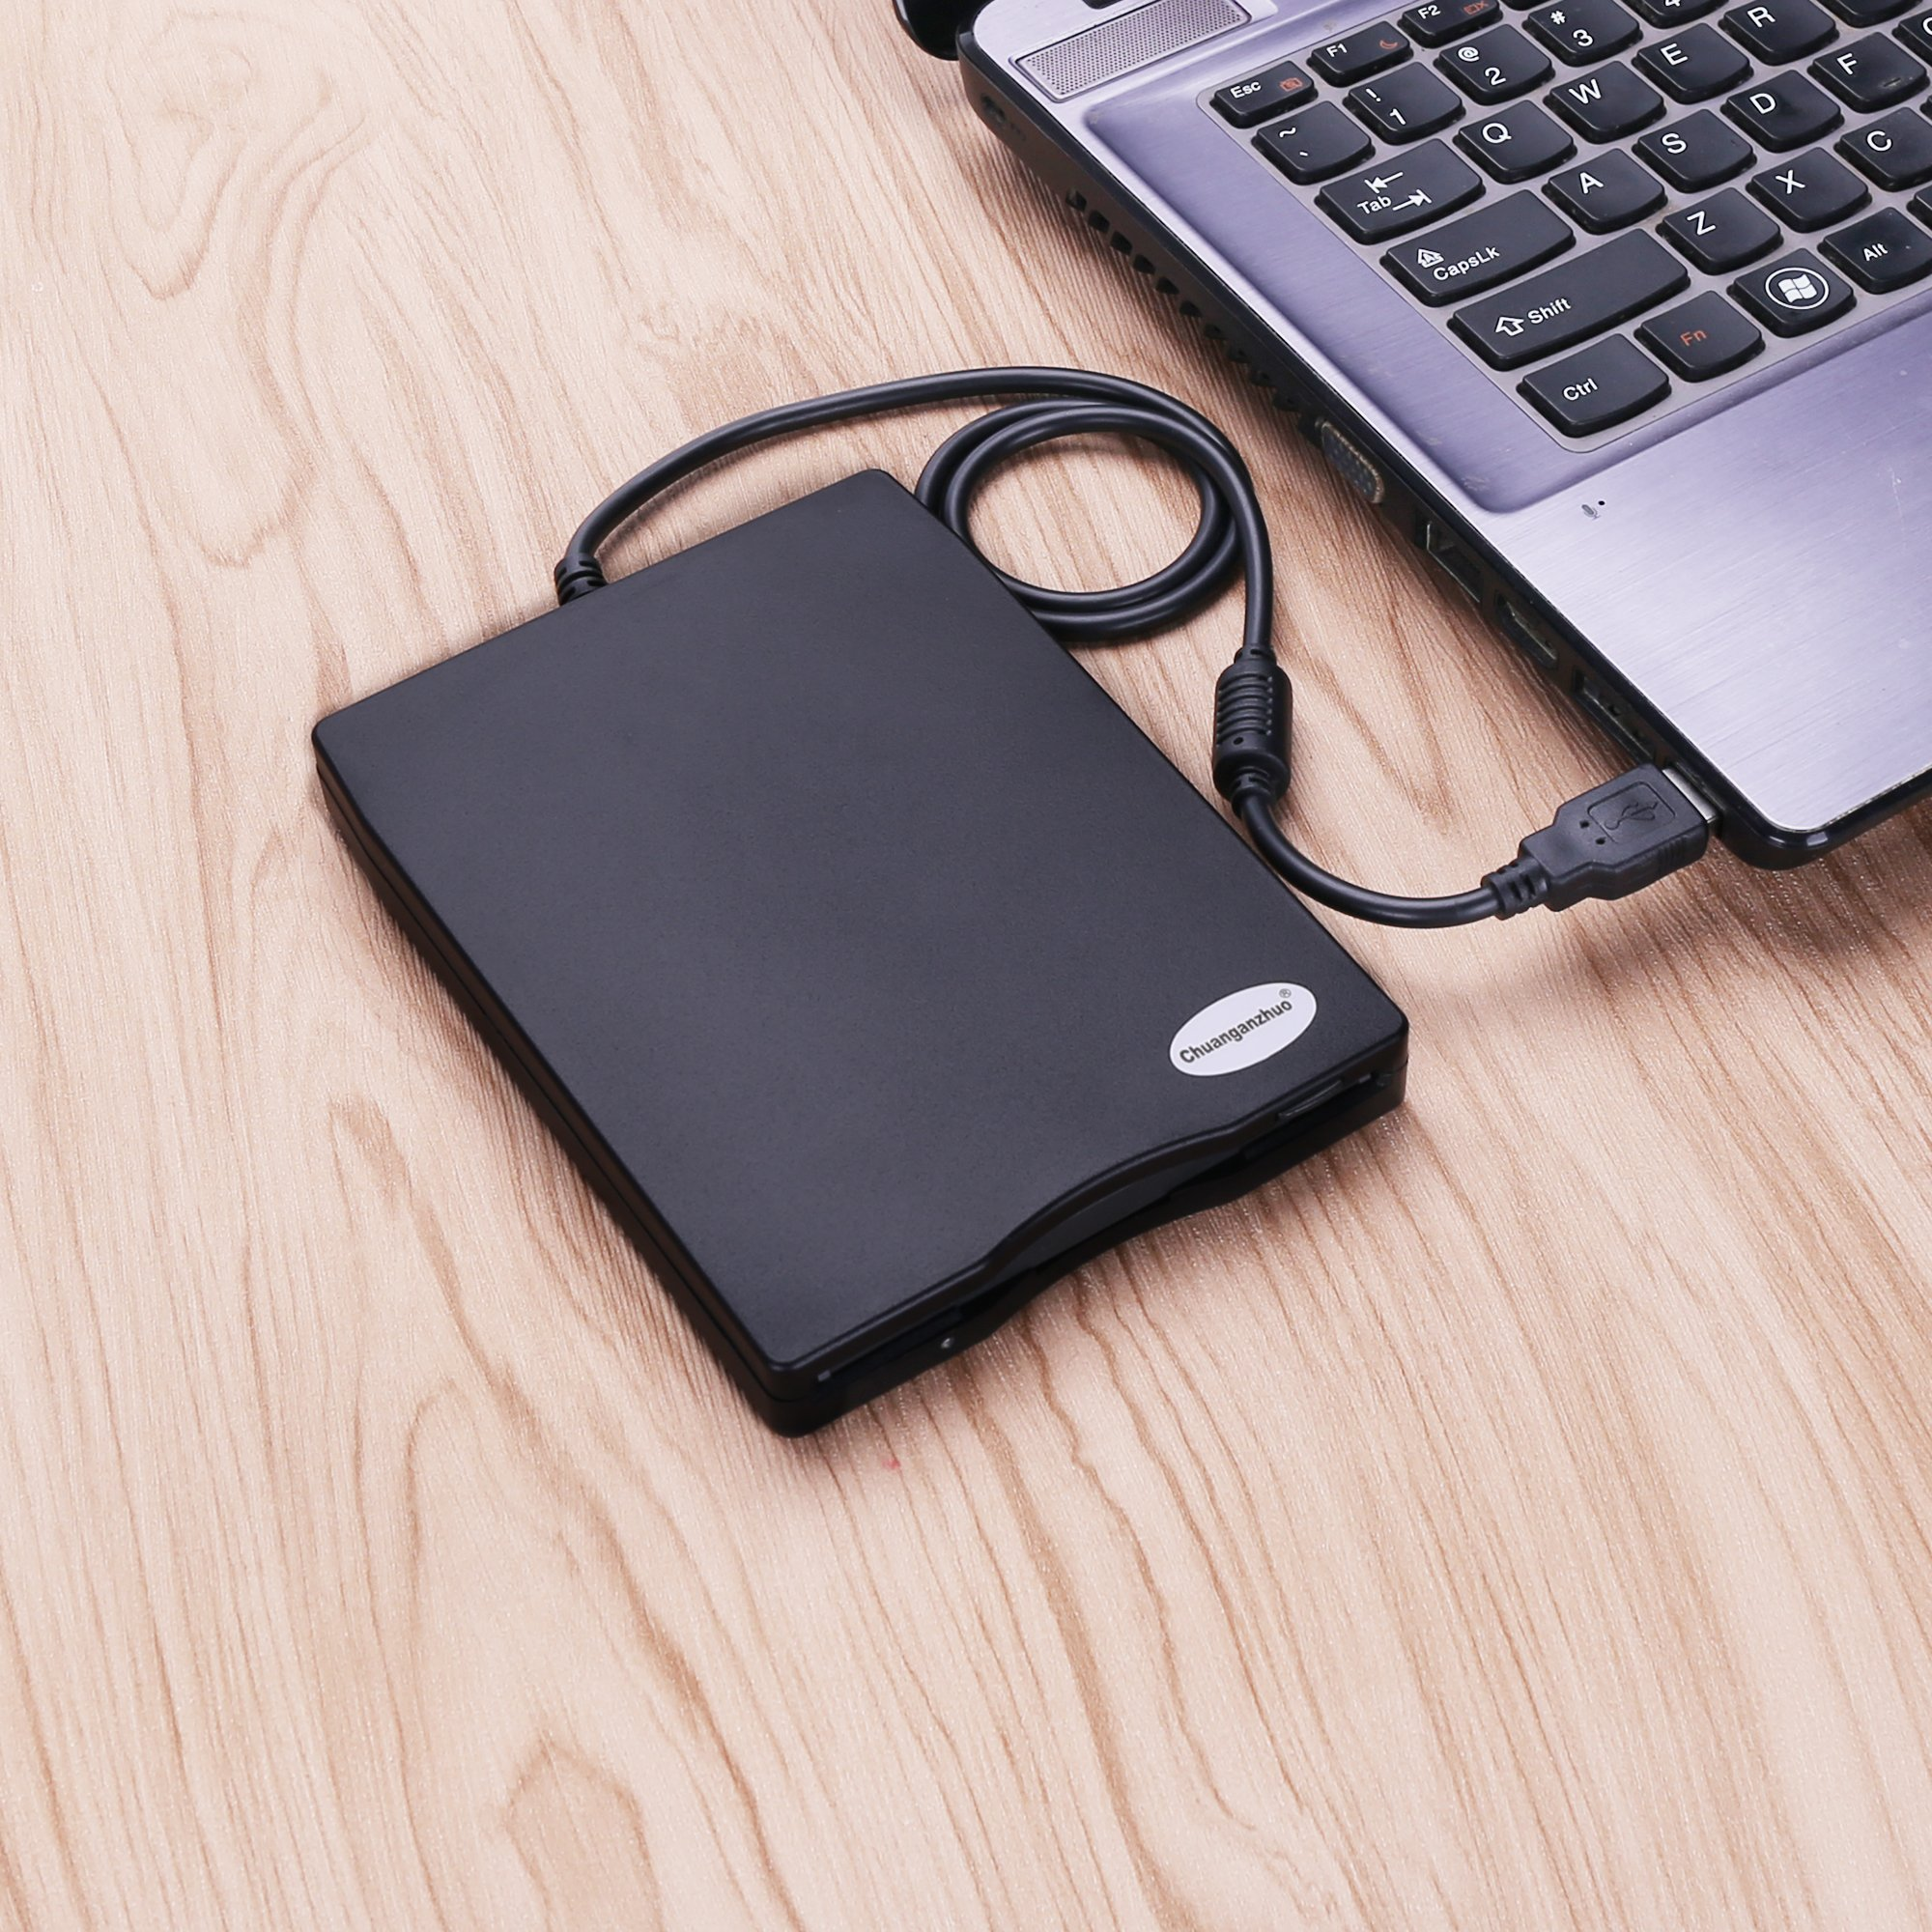 3.5'' USB External Floppy Disk Drive Portable 1.44 MB FDD for PC Windows 2000/XP/Vista/Windows 7/8/10 +Dustproof Scratch-Resistant External Bag Case,No External Driver,Plug and Play by Chuanganzhuo (Image #7)